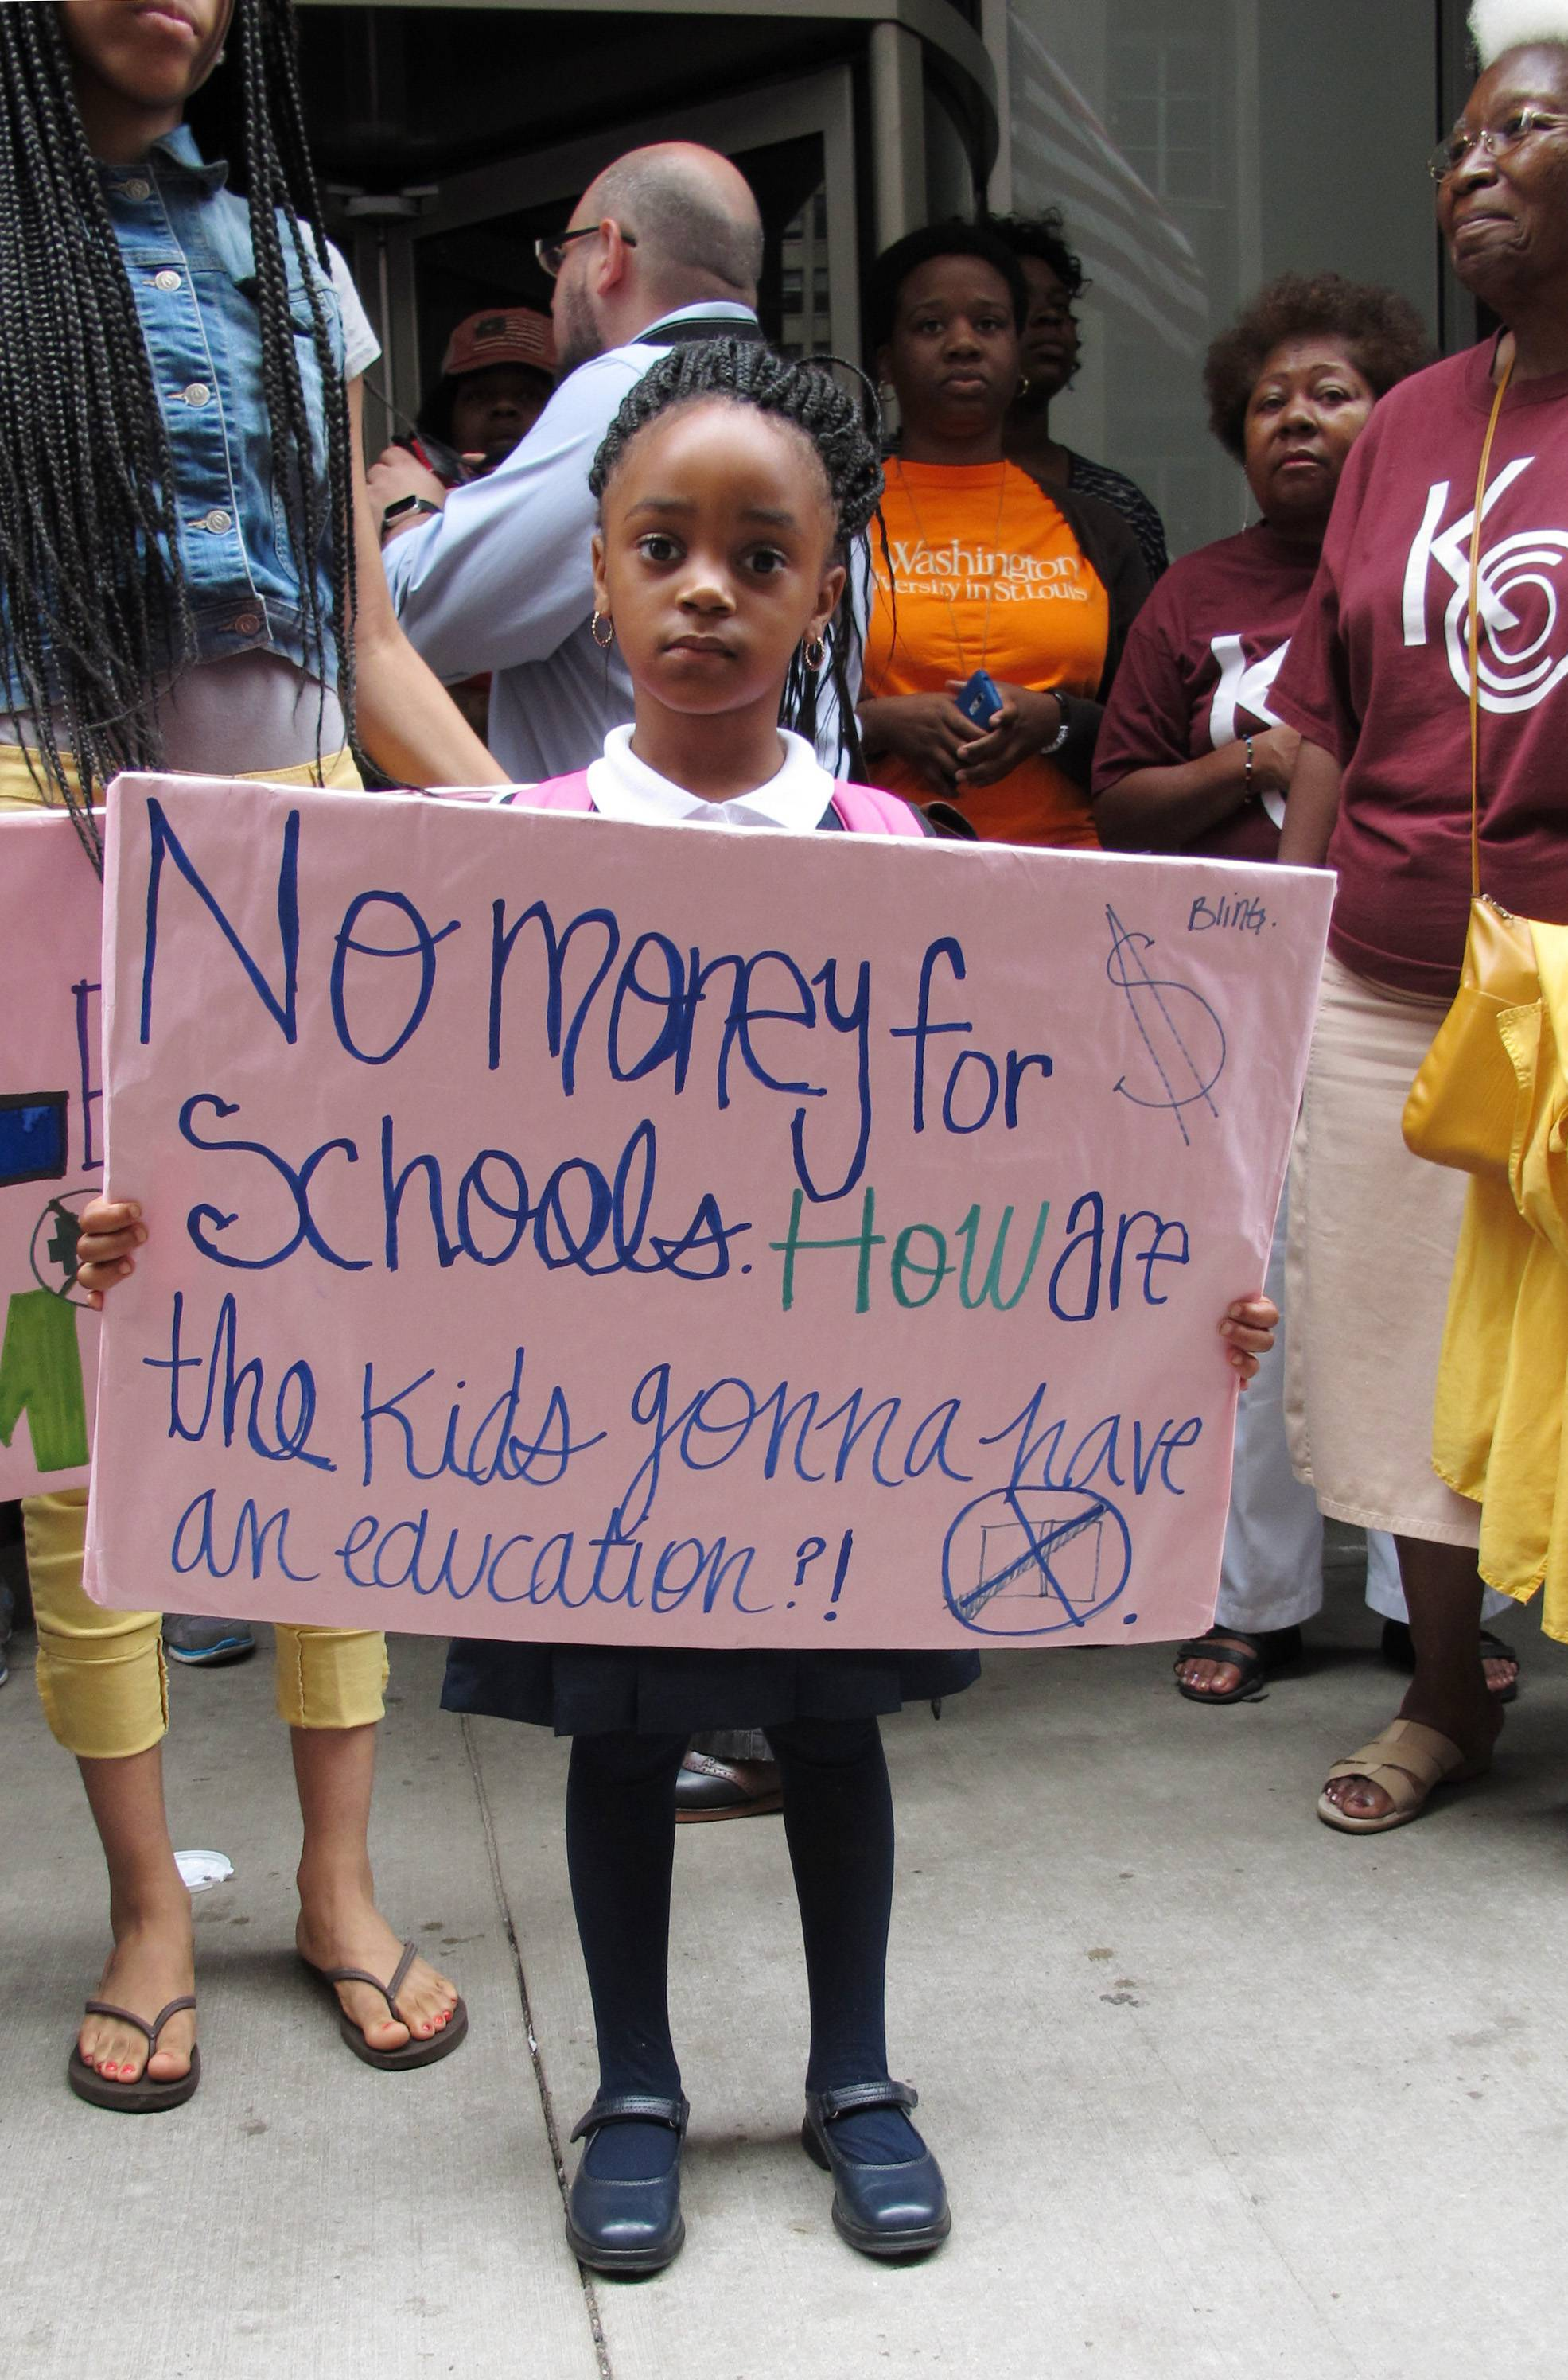 In this Aug. 28, 2013, file photo, Lariyah Beasley, a 4-year-old preschool student from Chicago, holds a sign during a rally outside the Chicago Board of Education headquarters in Chicago. Dozens of protesters, including Lariyah's mother and other parents, students and activists, decried the lack of funding for the city's public school students, especially for black students.